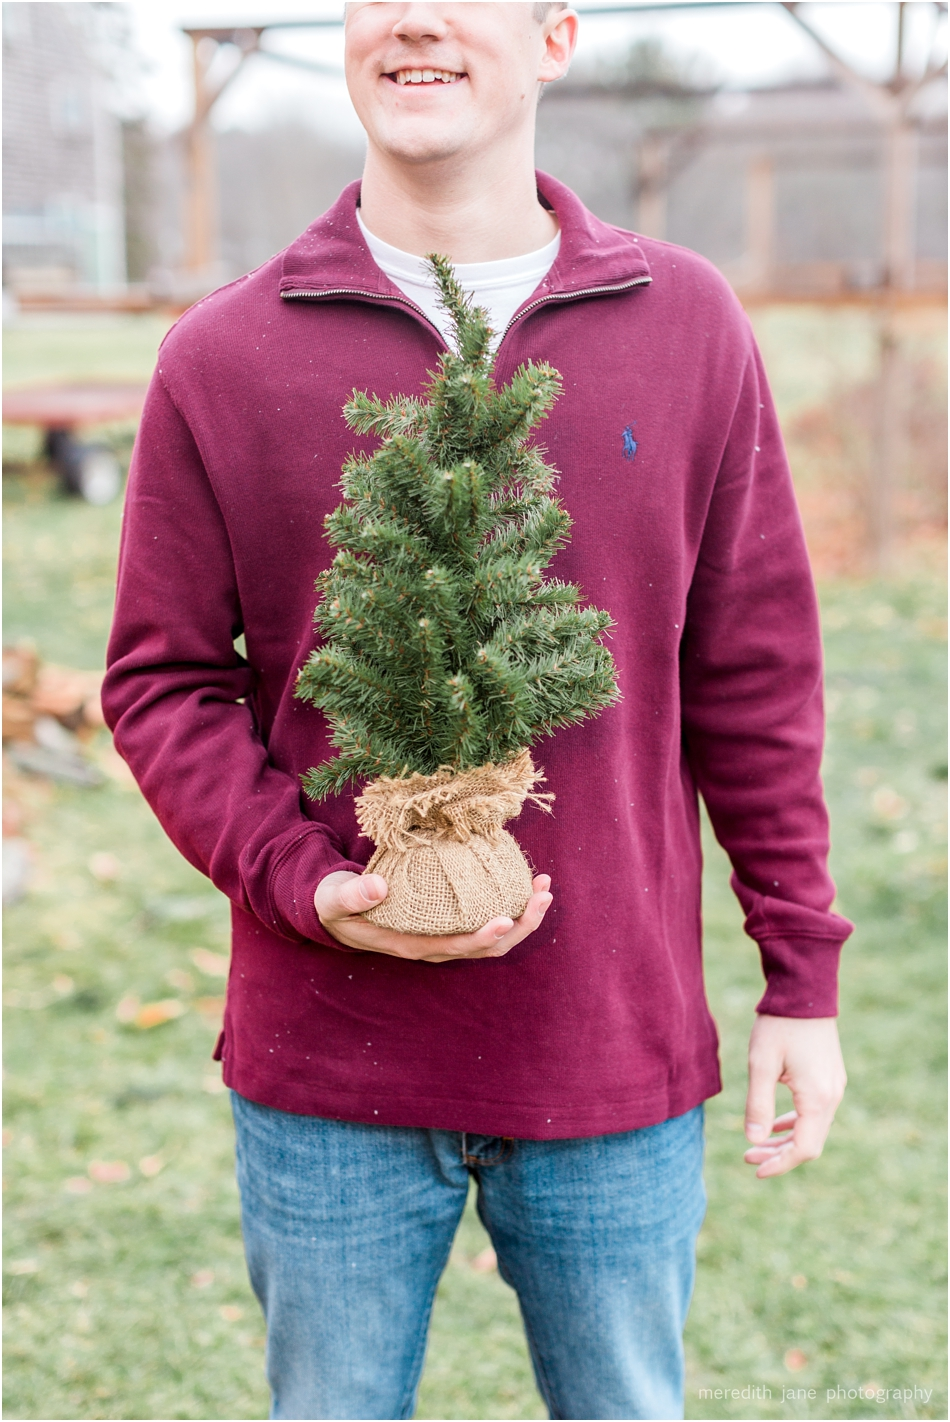 mistletoe_holiday_tree_farm_christmas_boston_massachusetts_engagement_fall_cape_cod_wedding_photographer_Meredith_Jane_Photography_photo_1014.jpg